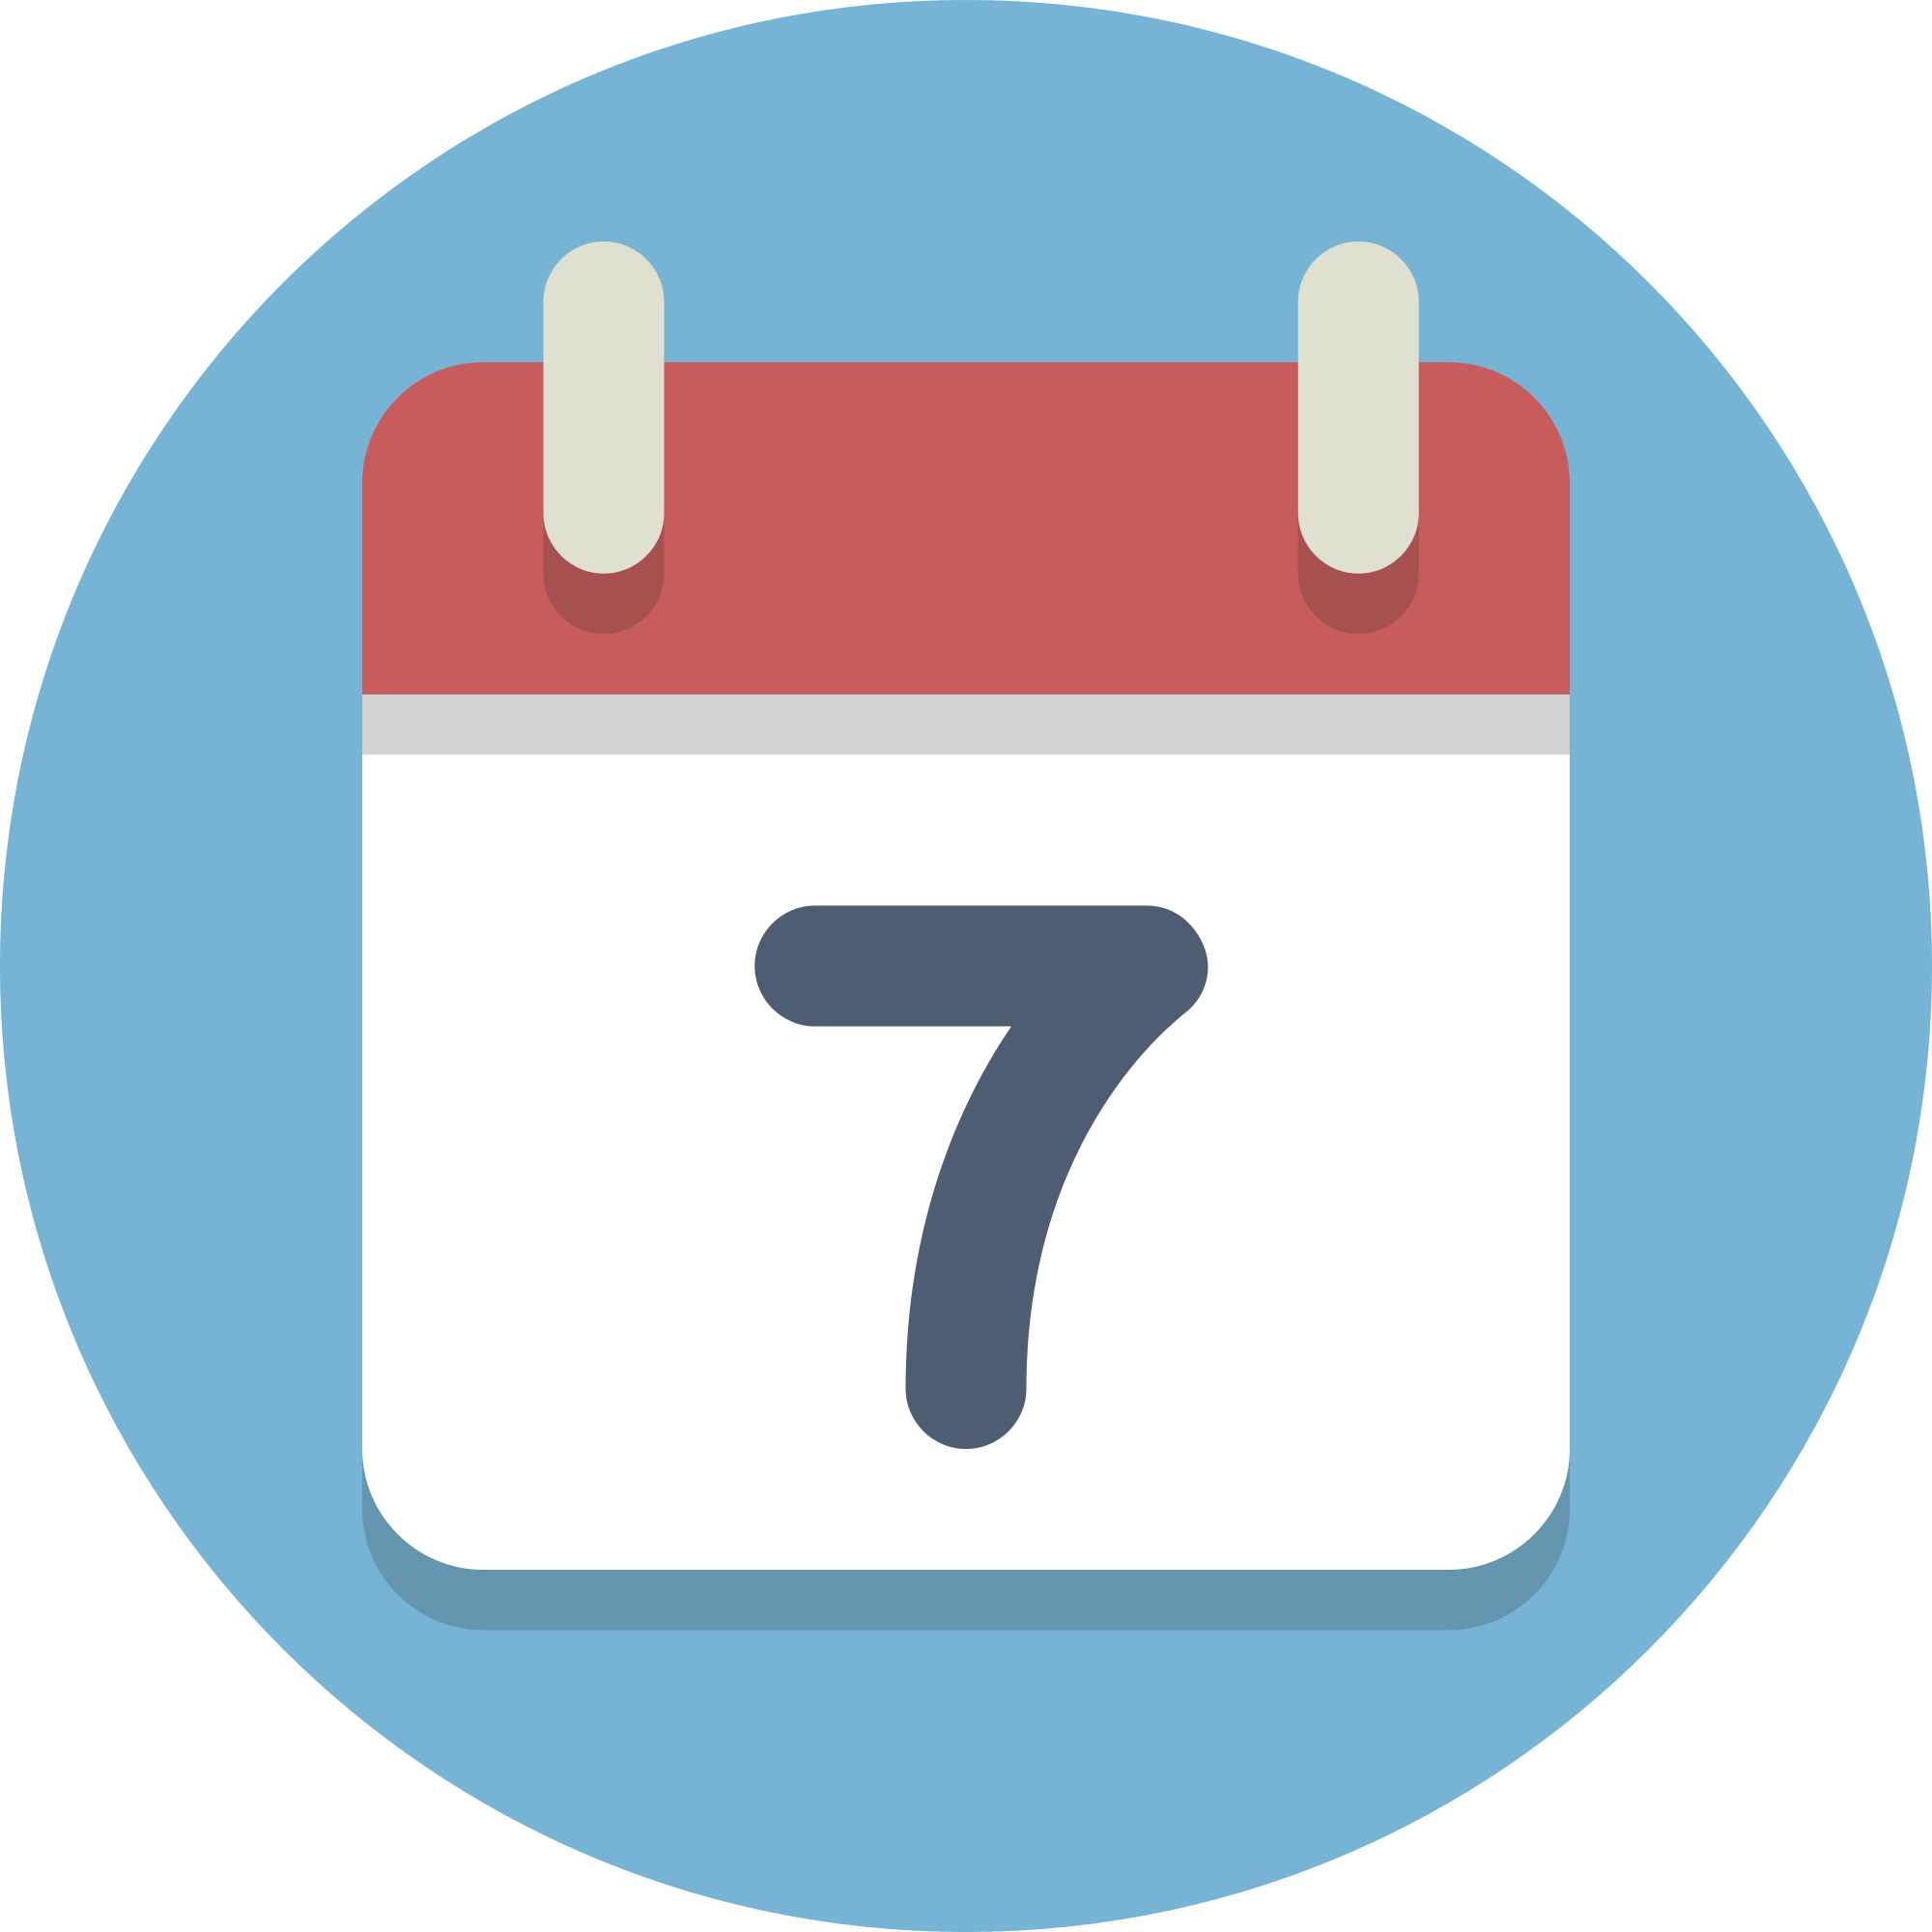 Svg events icon. File circle icons calendar